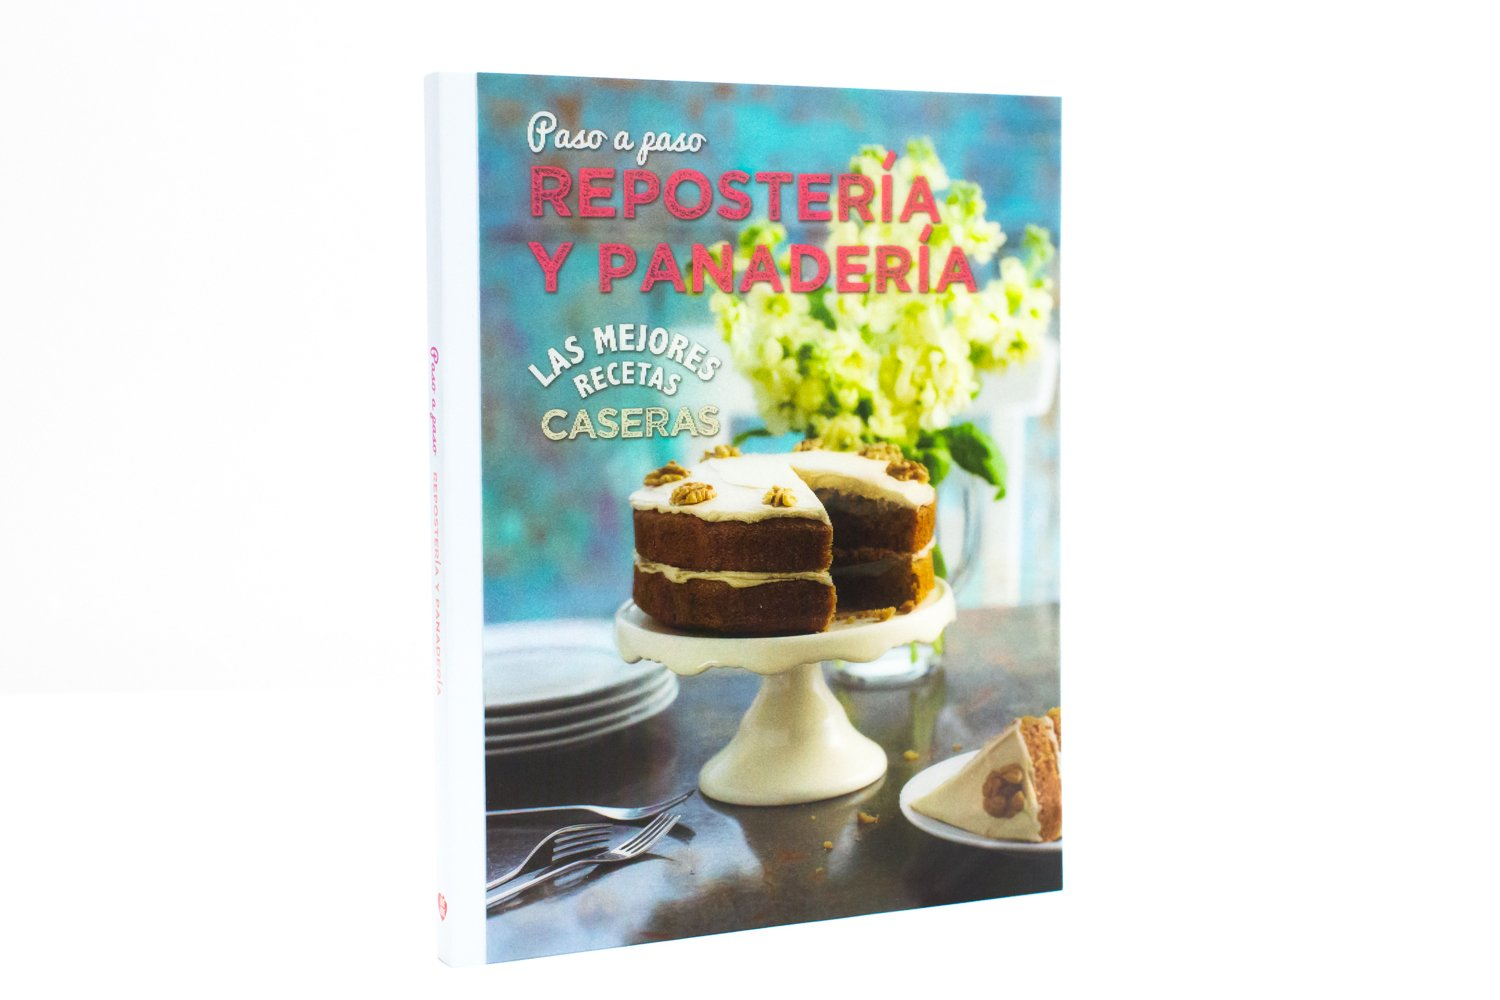 Las Mejores Recetas Caseras Paso a Paso - Reposteria y panaderia (Made from Scratch) (Spanish Edition): Parragon Books: 9781472350565: Amazon.com: Books